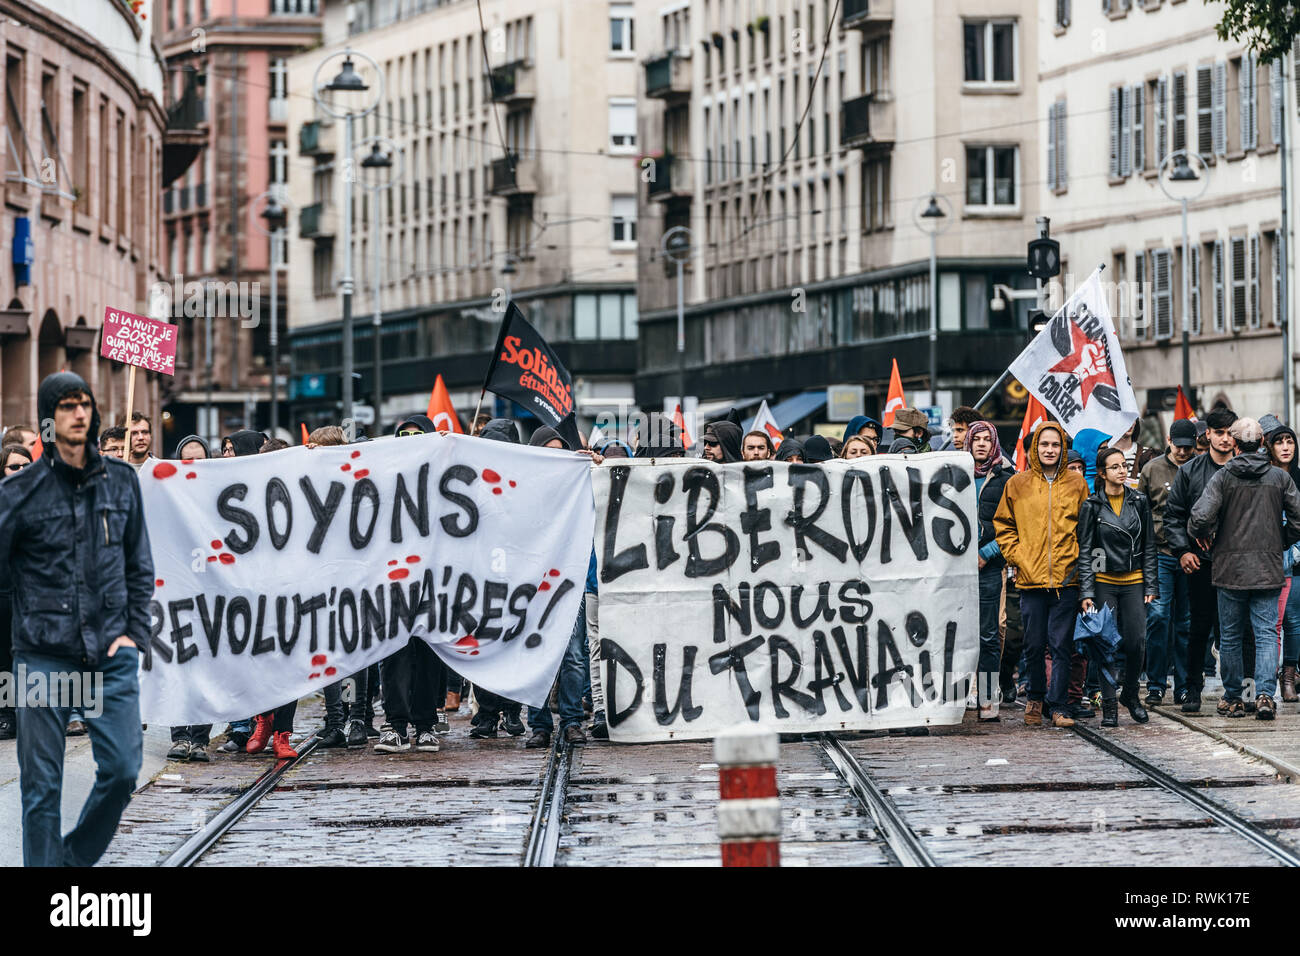 Strasbourg, France - Sep 12, 2017: let's be revolutionary message on placard at political march during a French Nationwide day of protest against the labor reforms - thousands of people on street - Stock Image